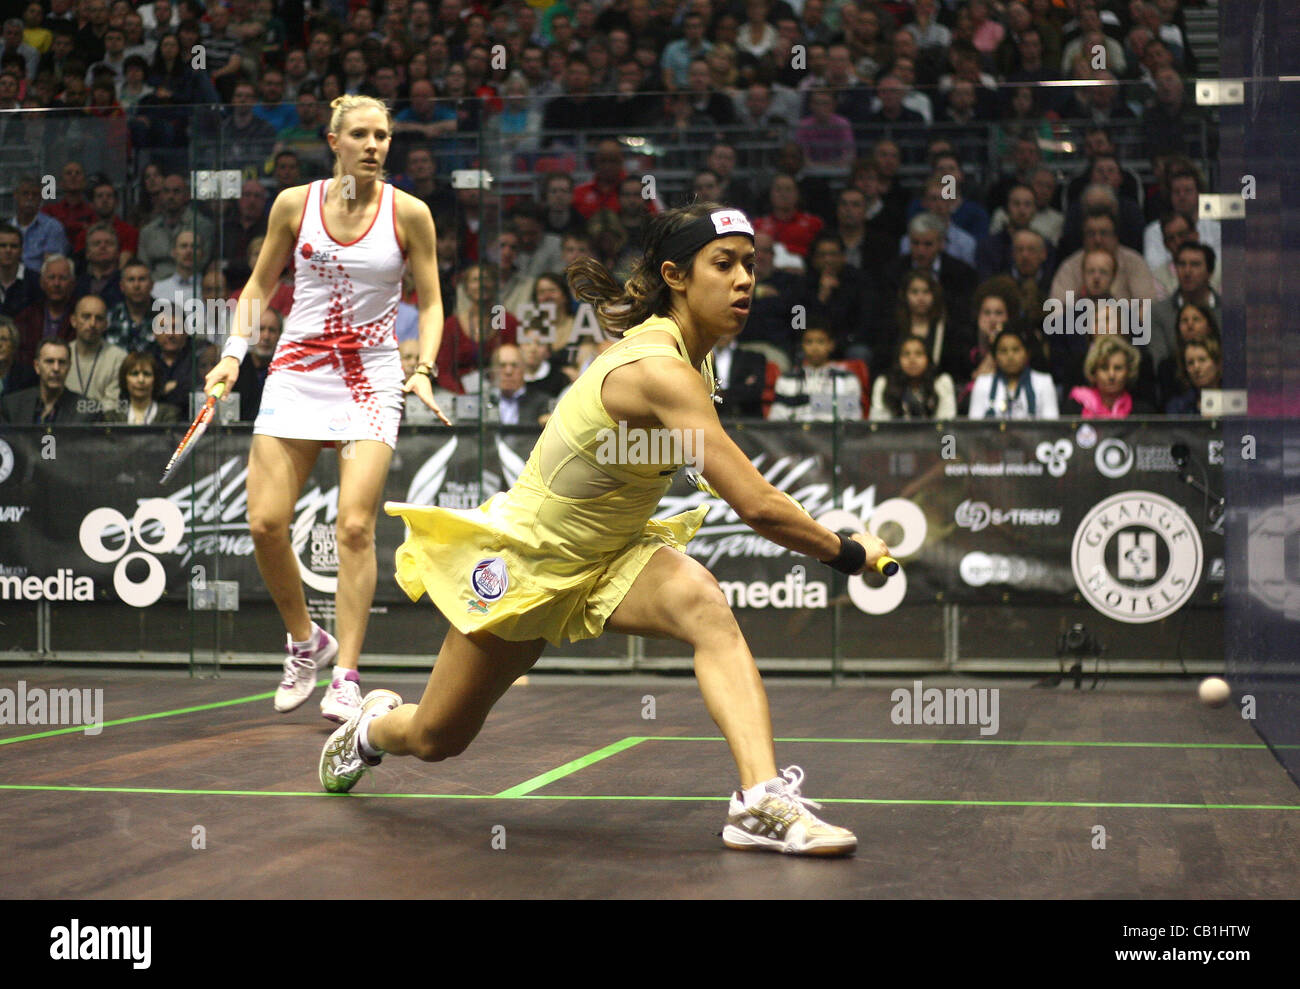 19.05.2012 The O2, London, England. Nicol David (MAS) in action against Laura Massaro (ENG) during their semi-final - Stock Image